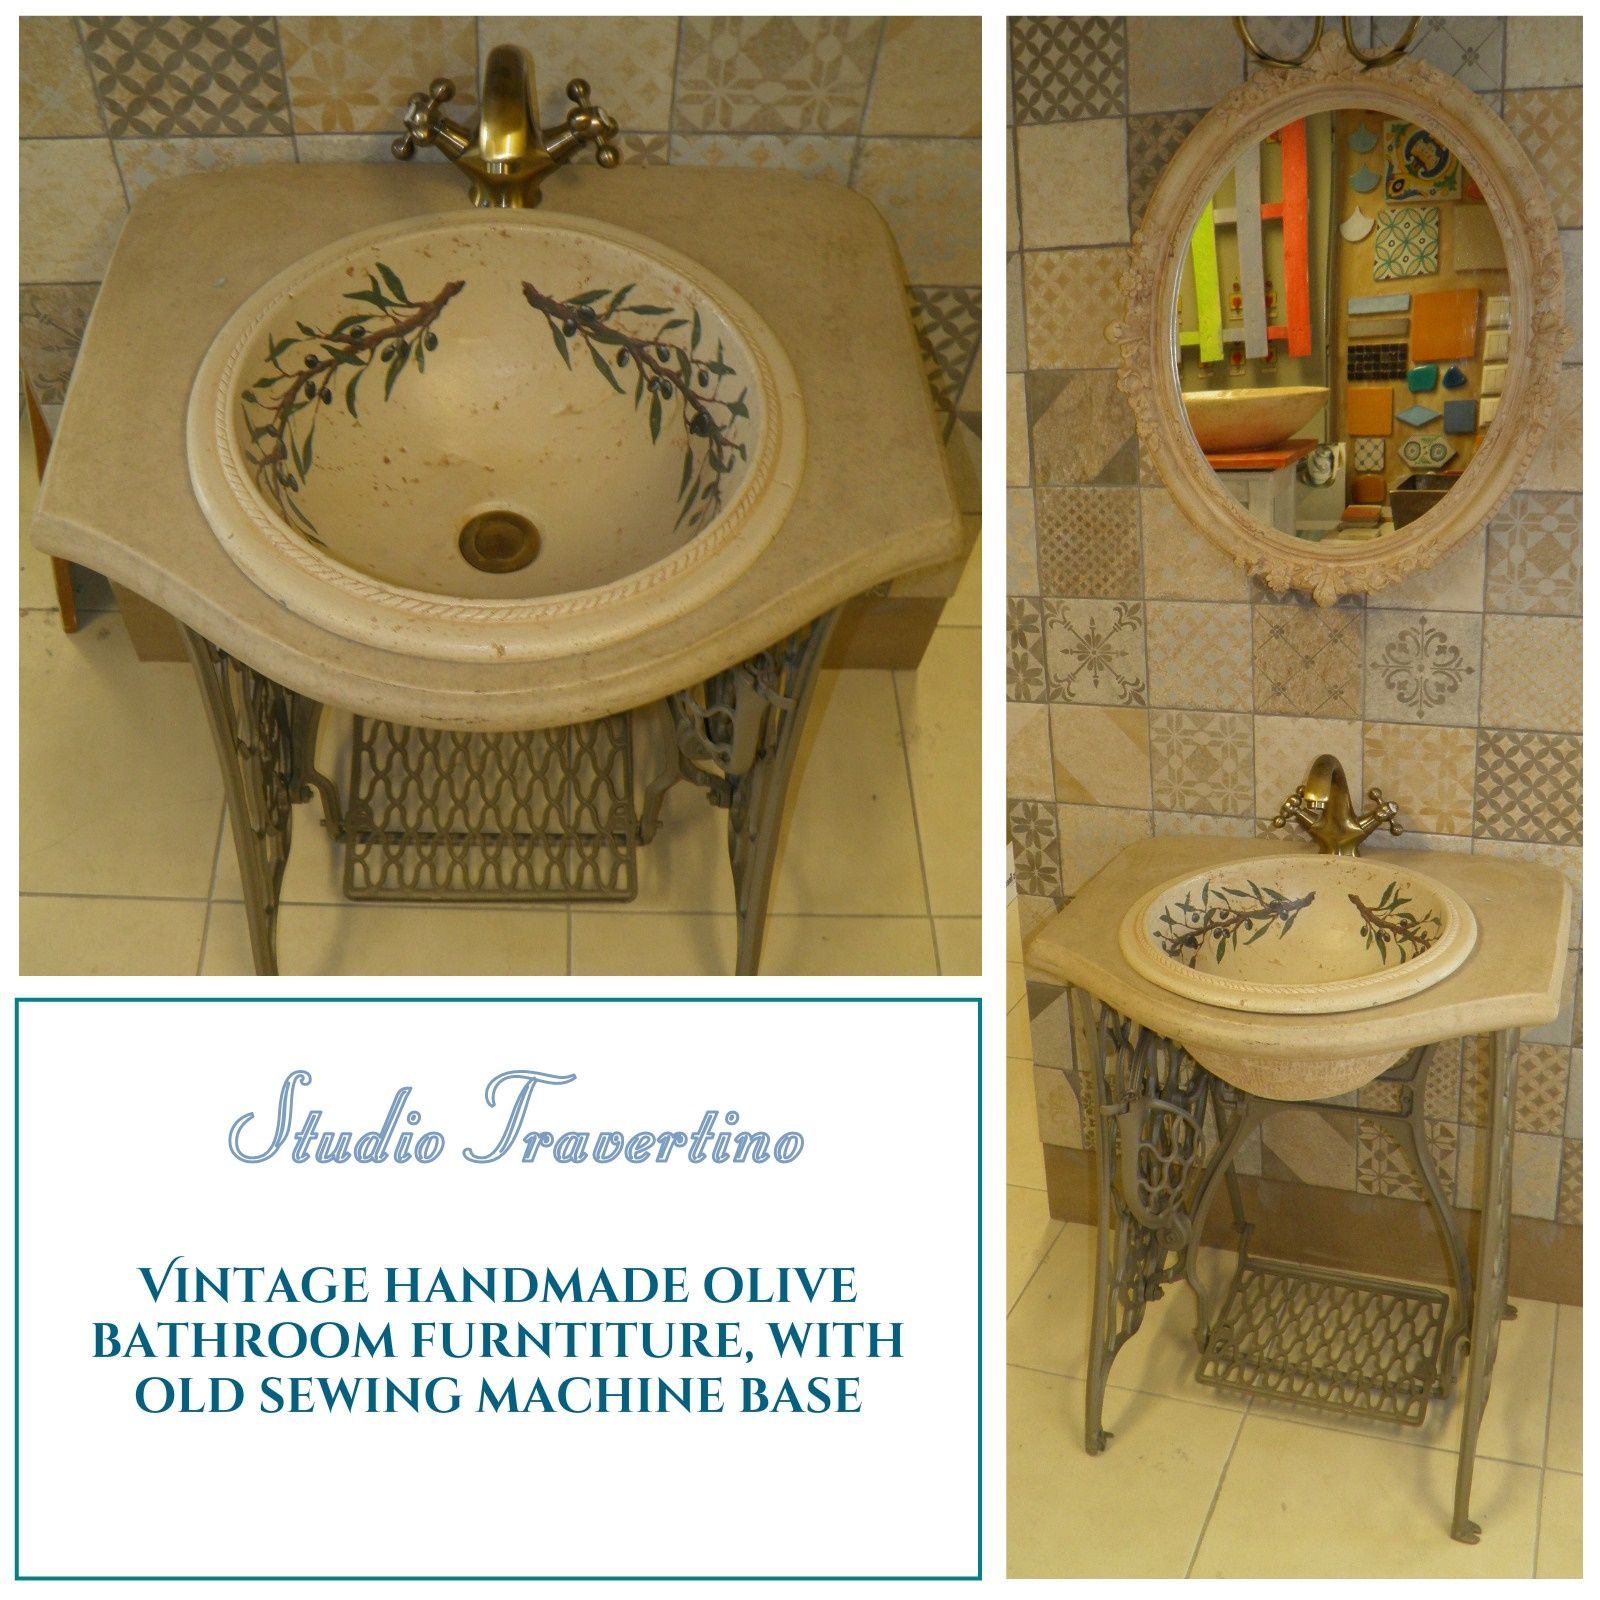 Handmade Olive Bathroom Furniture, With Old Sewing Machine